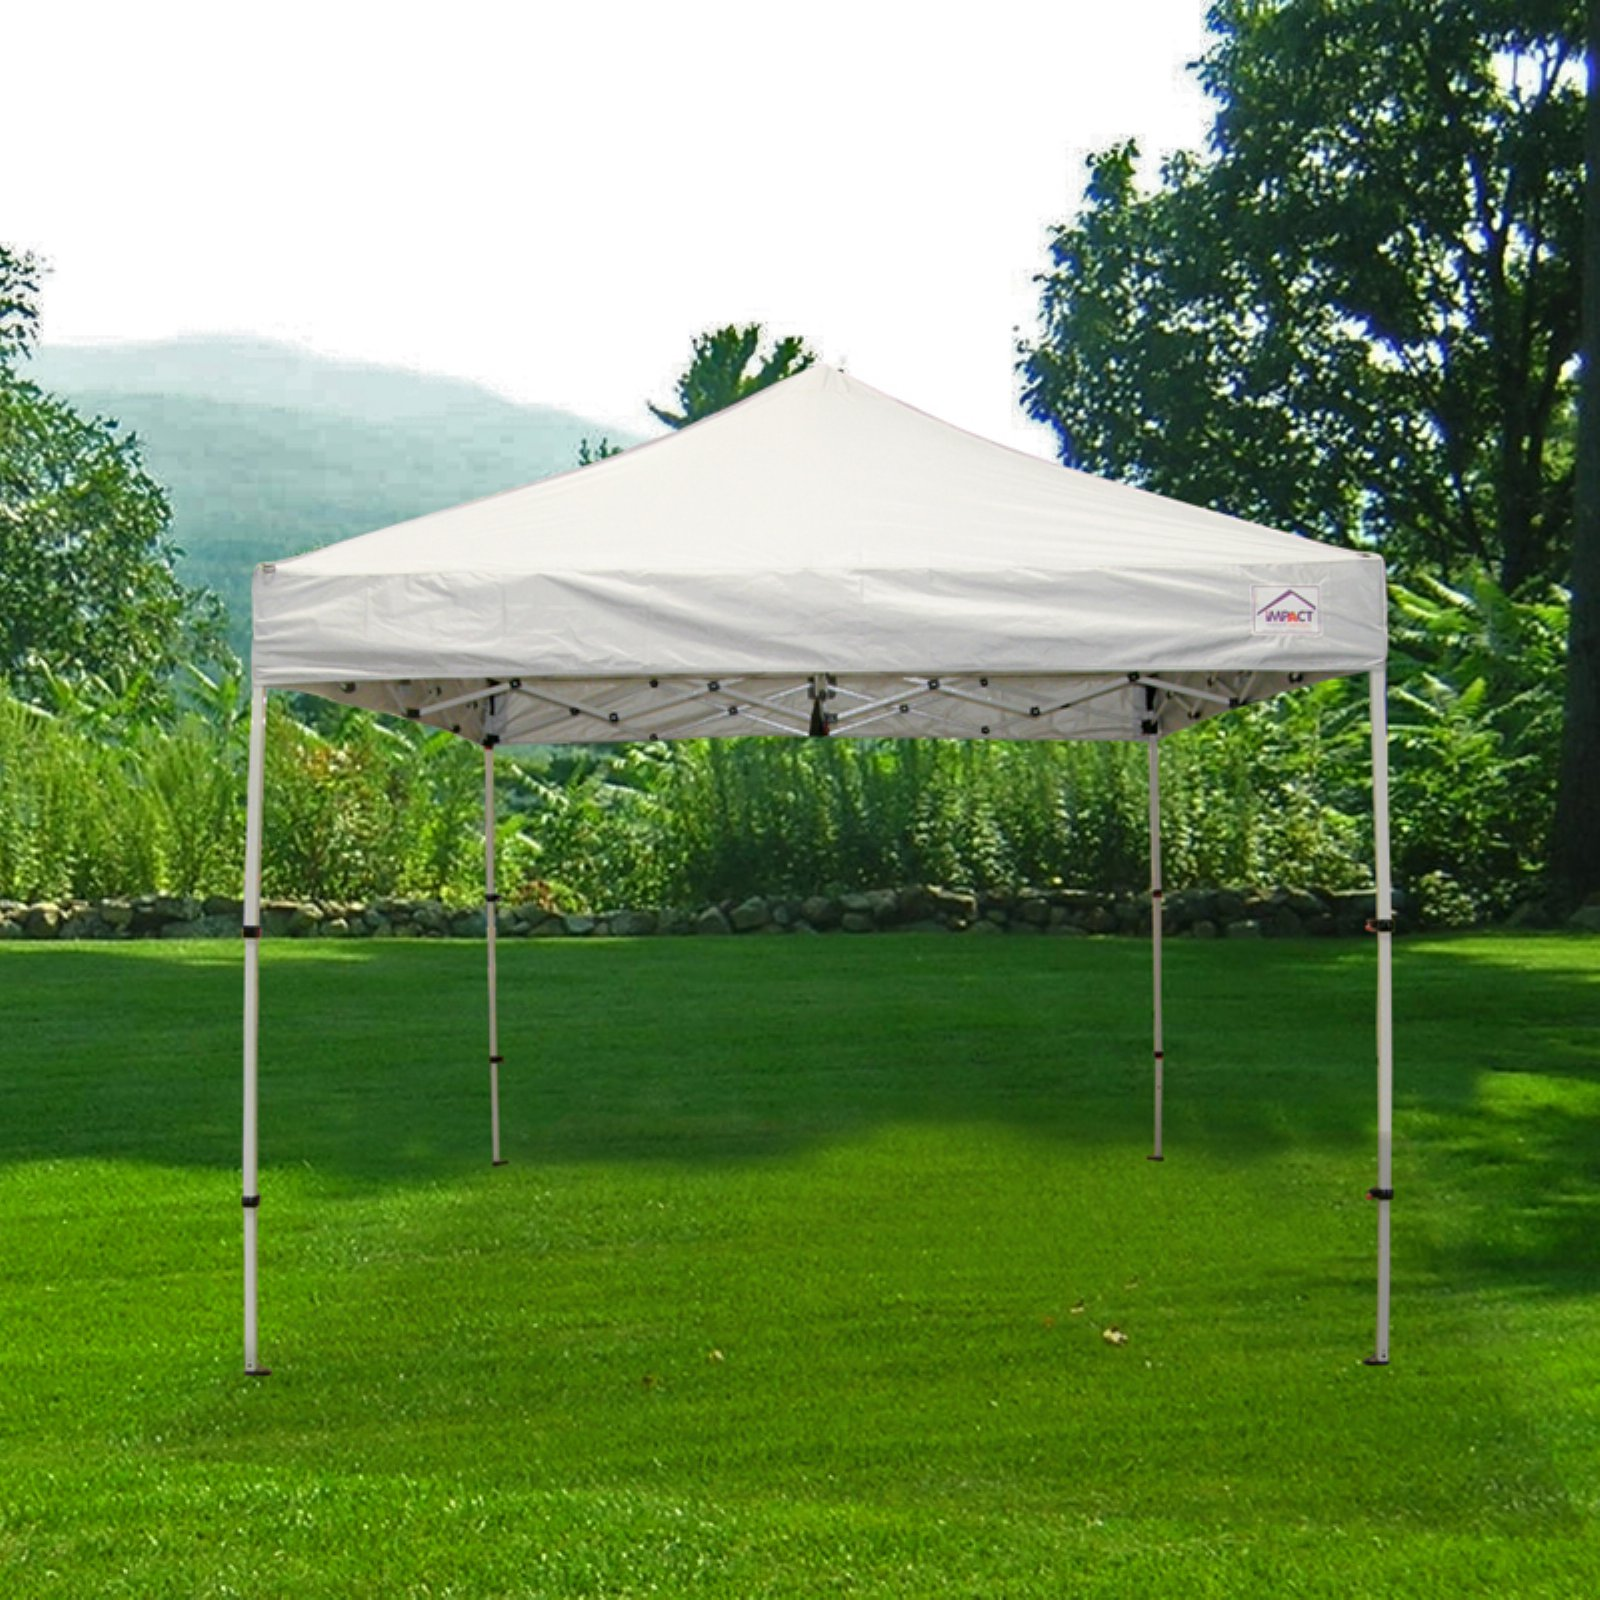 Impact Canopy 10 x 10 ft. Pop Up Canopy Tent Folds To 42 in. & Impact Canopy 10 x 10 ft. Pop Up Canopy Tent Folds To 42 in. Tall ...